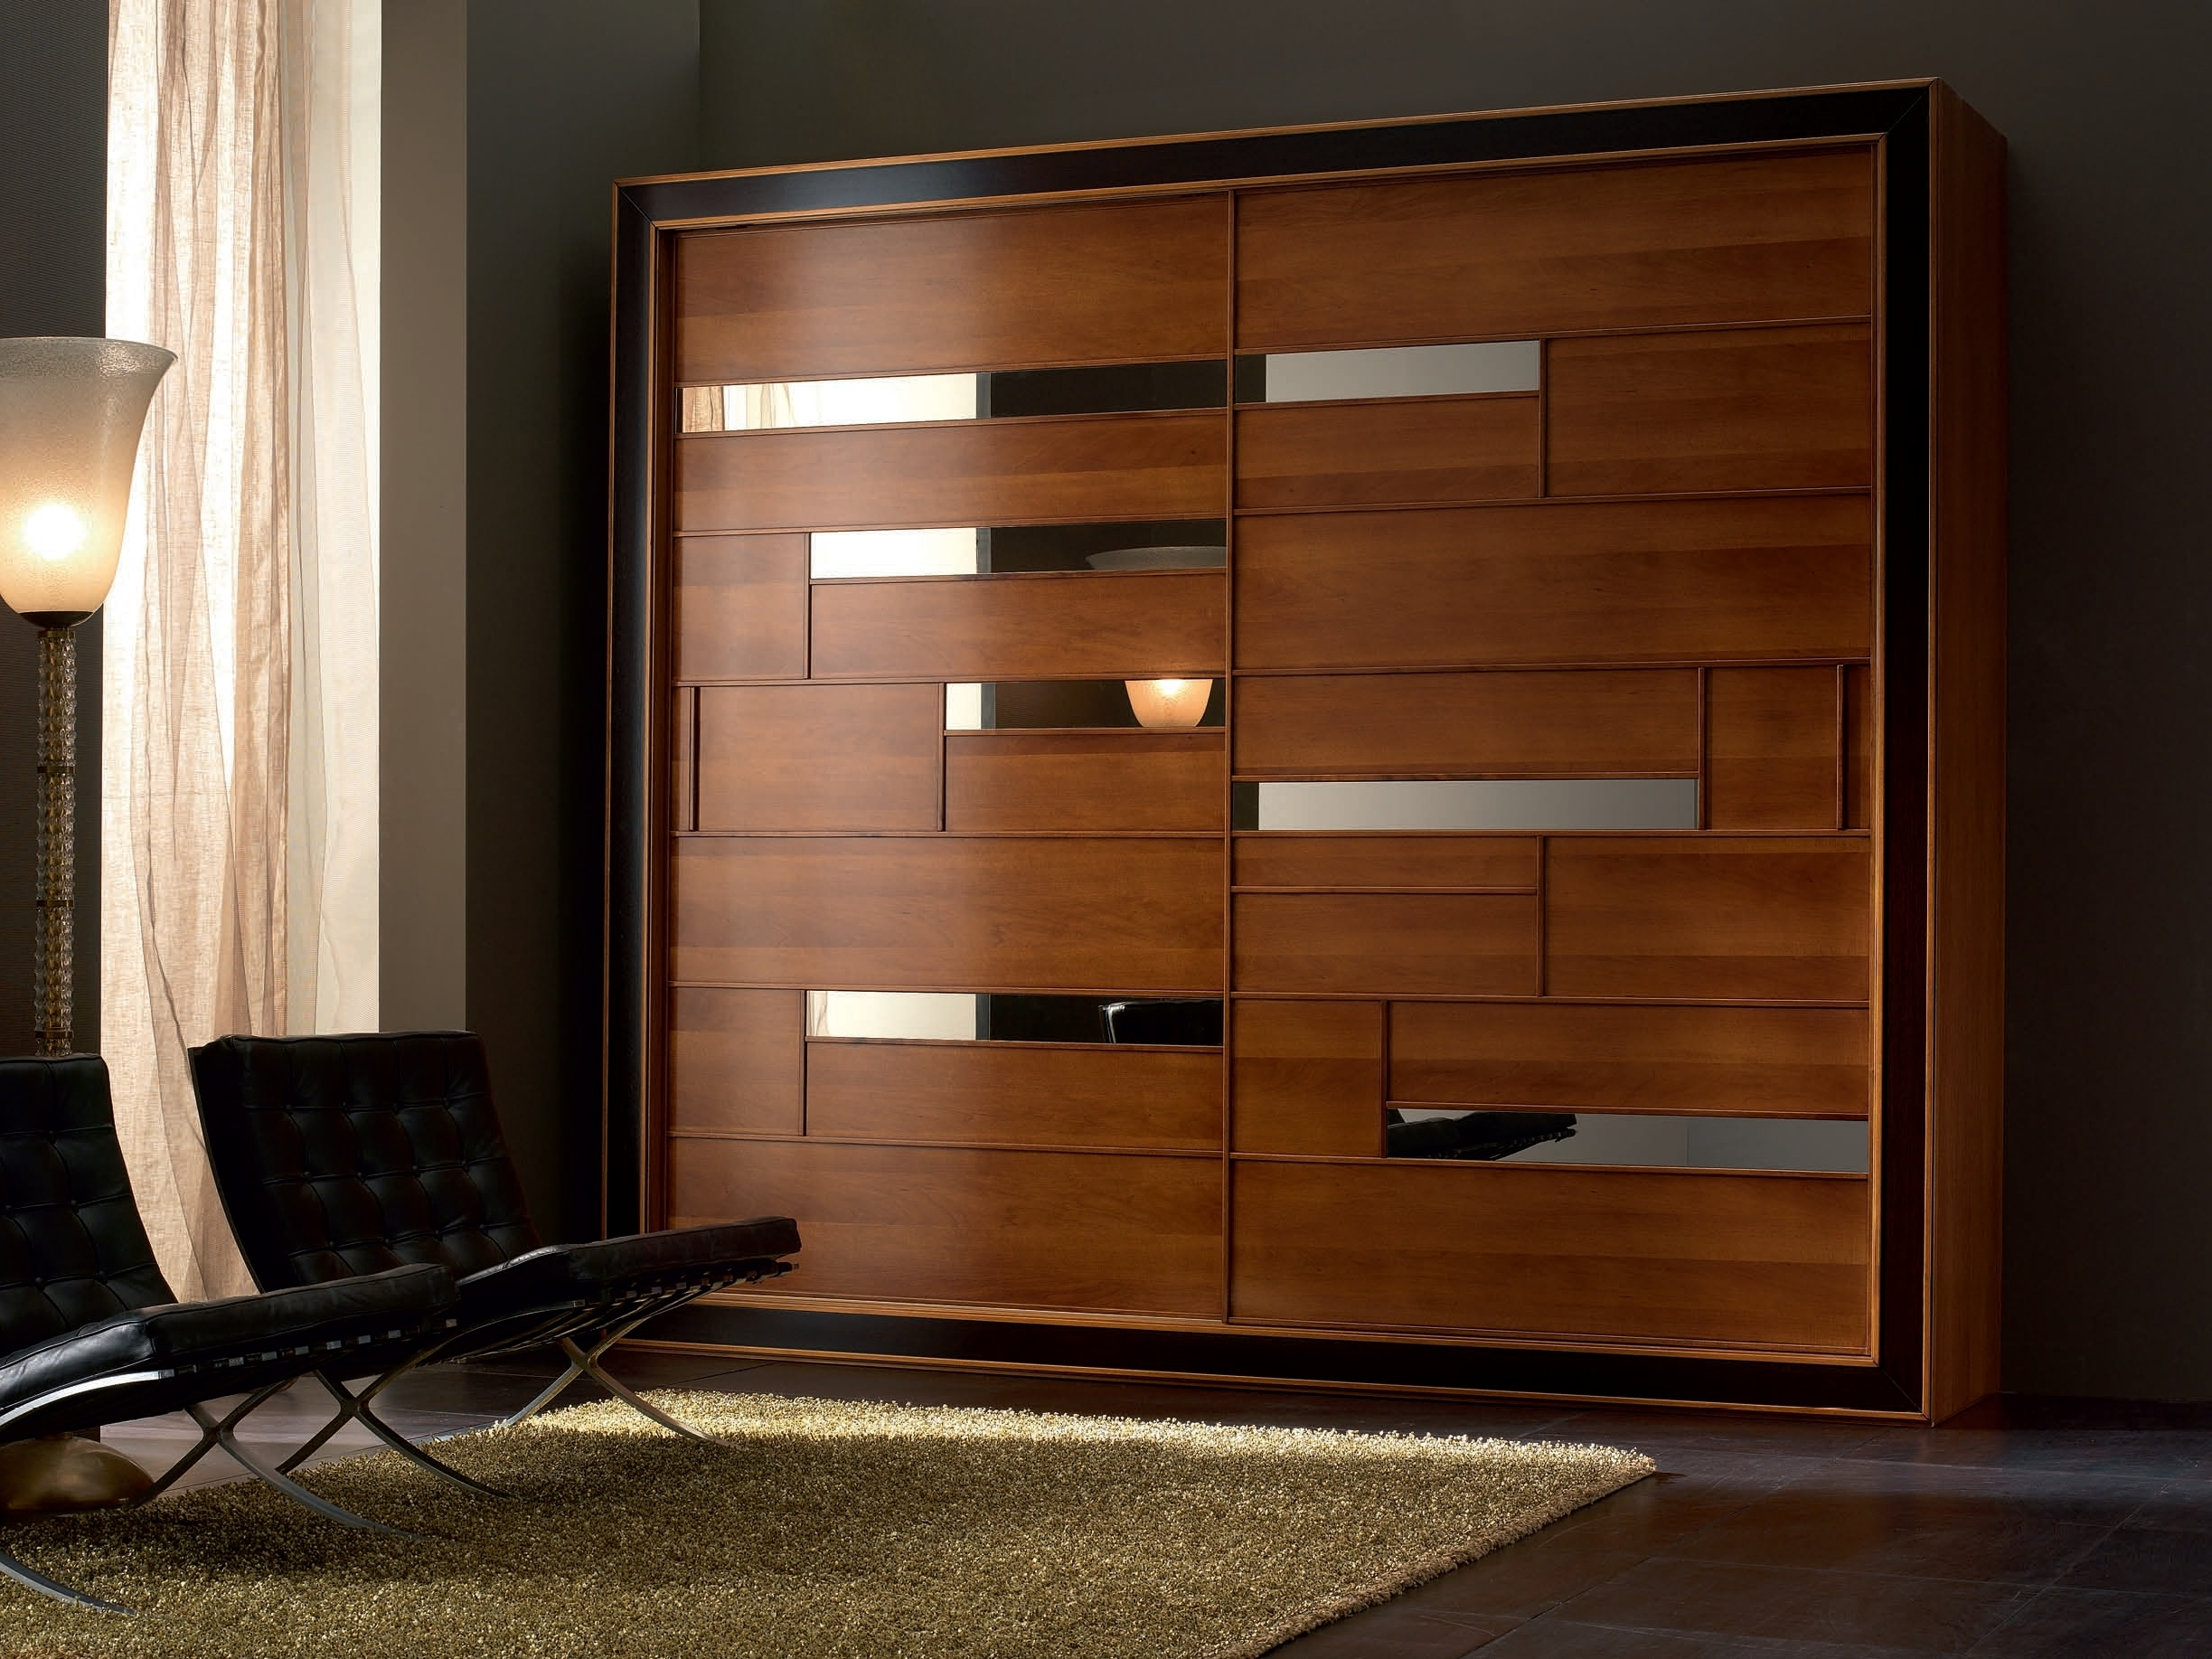 Solid Wood Fitted Wardrobes White Wardrobe Dark You Must See This Throughout Fashionable Wood Wardrobes (View 11 of 15)